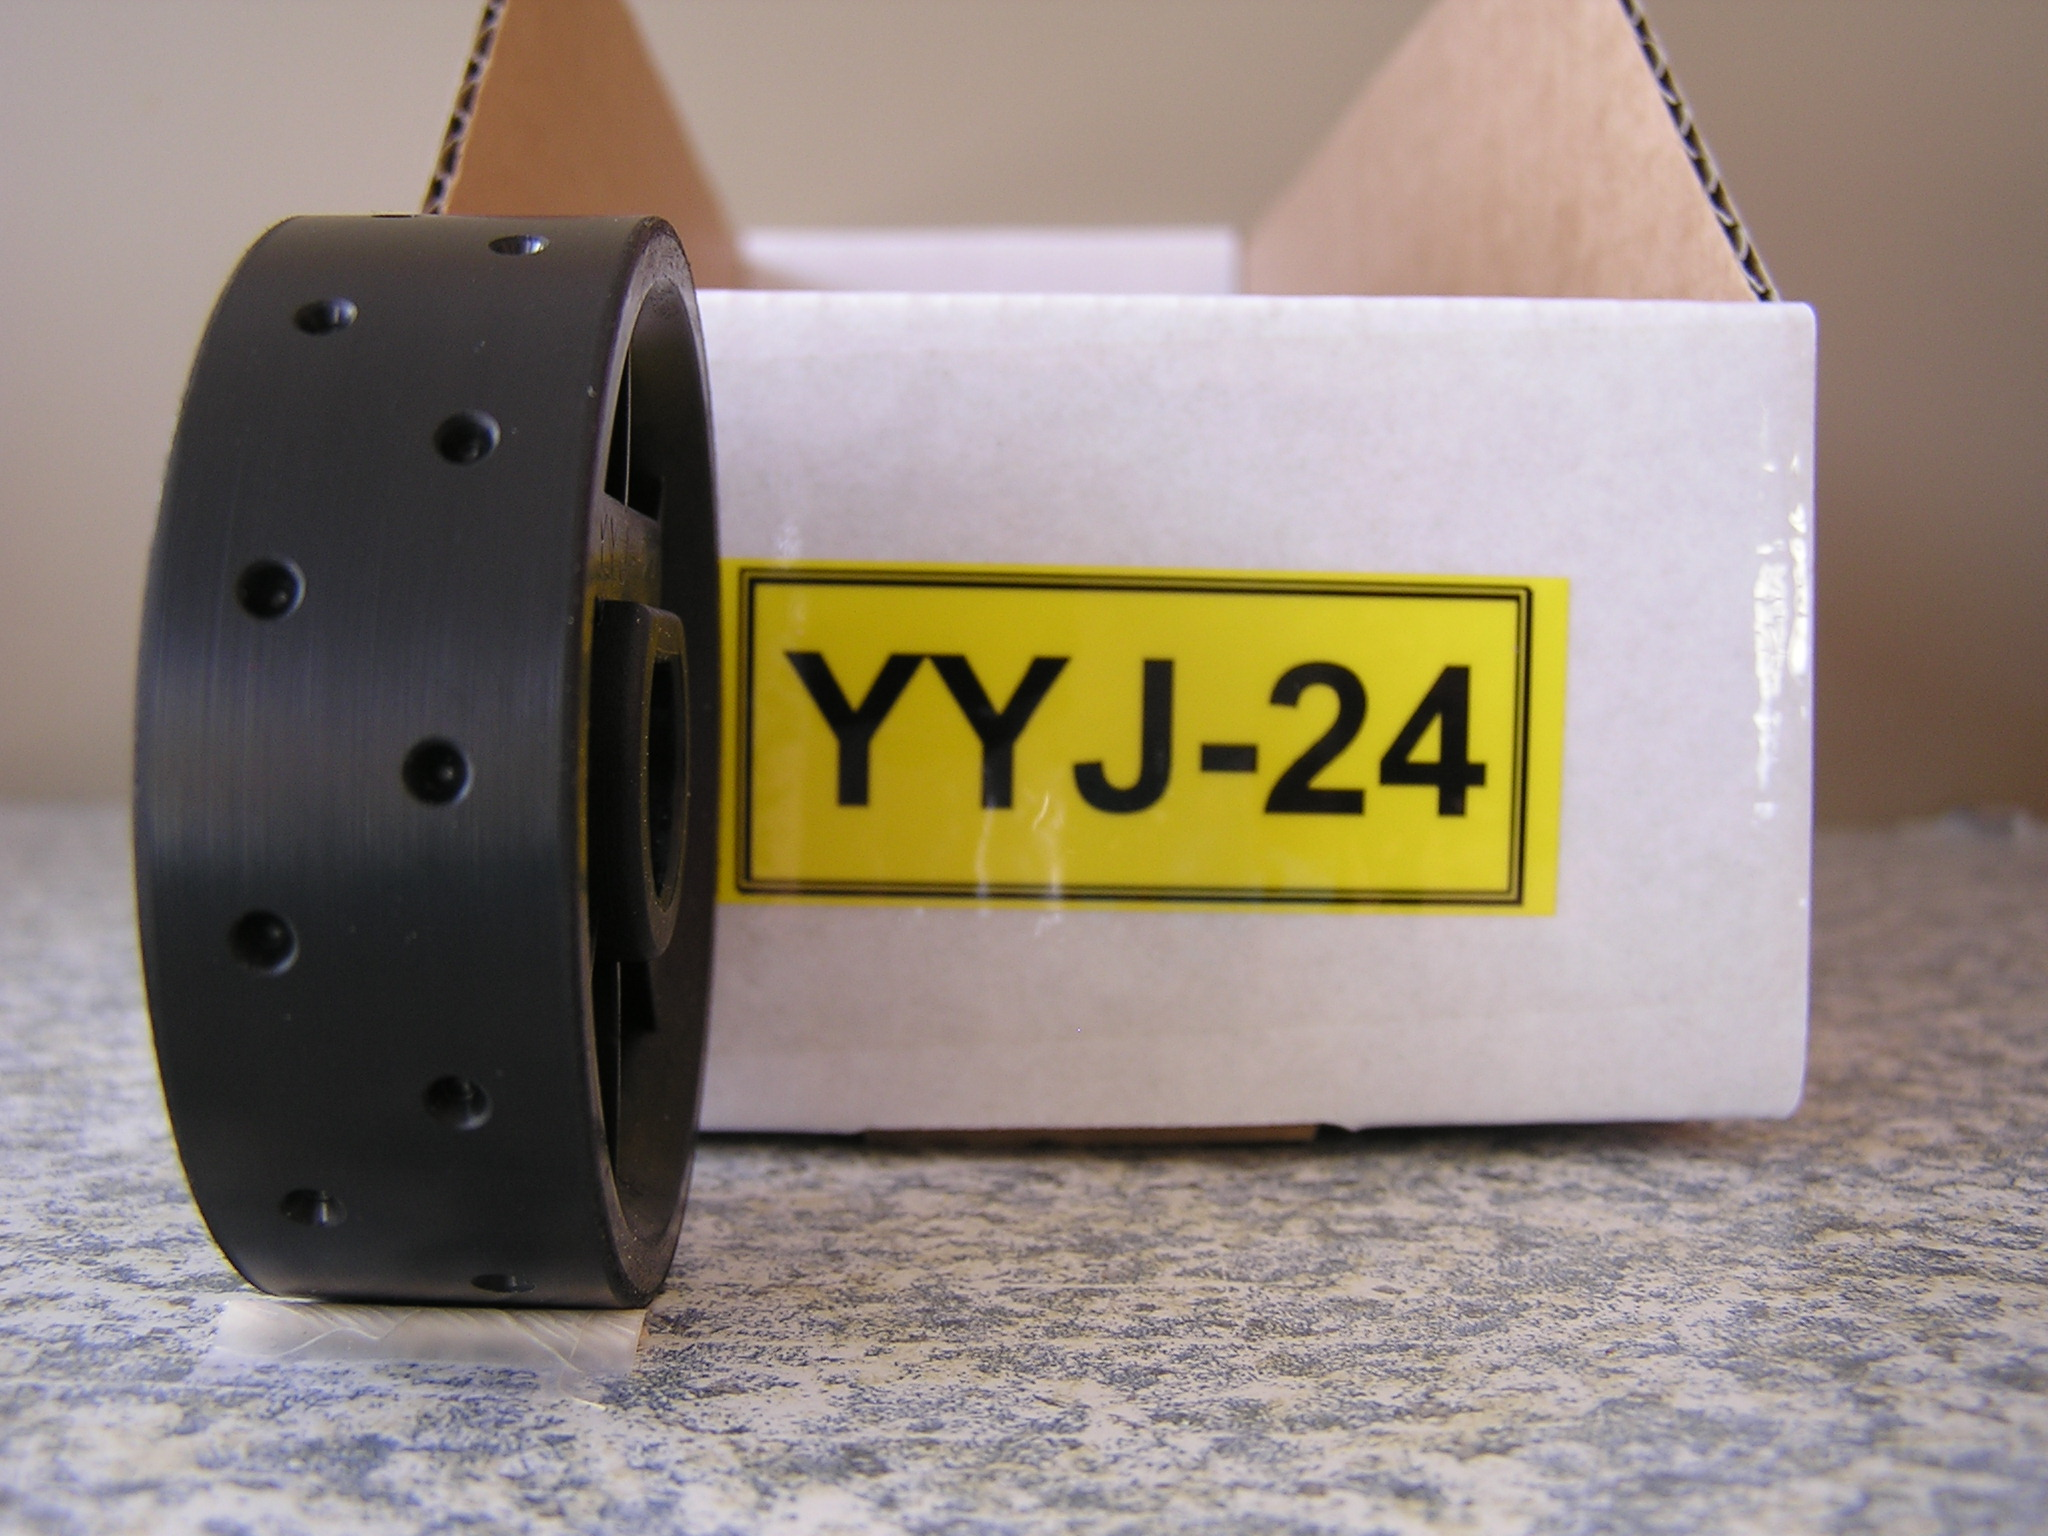 YYJ-24 Roller for Jang Seeder, 3 mm Slot, 24 Slots on the Rollers